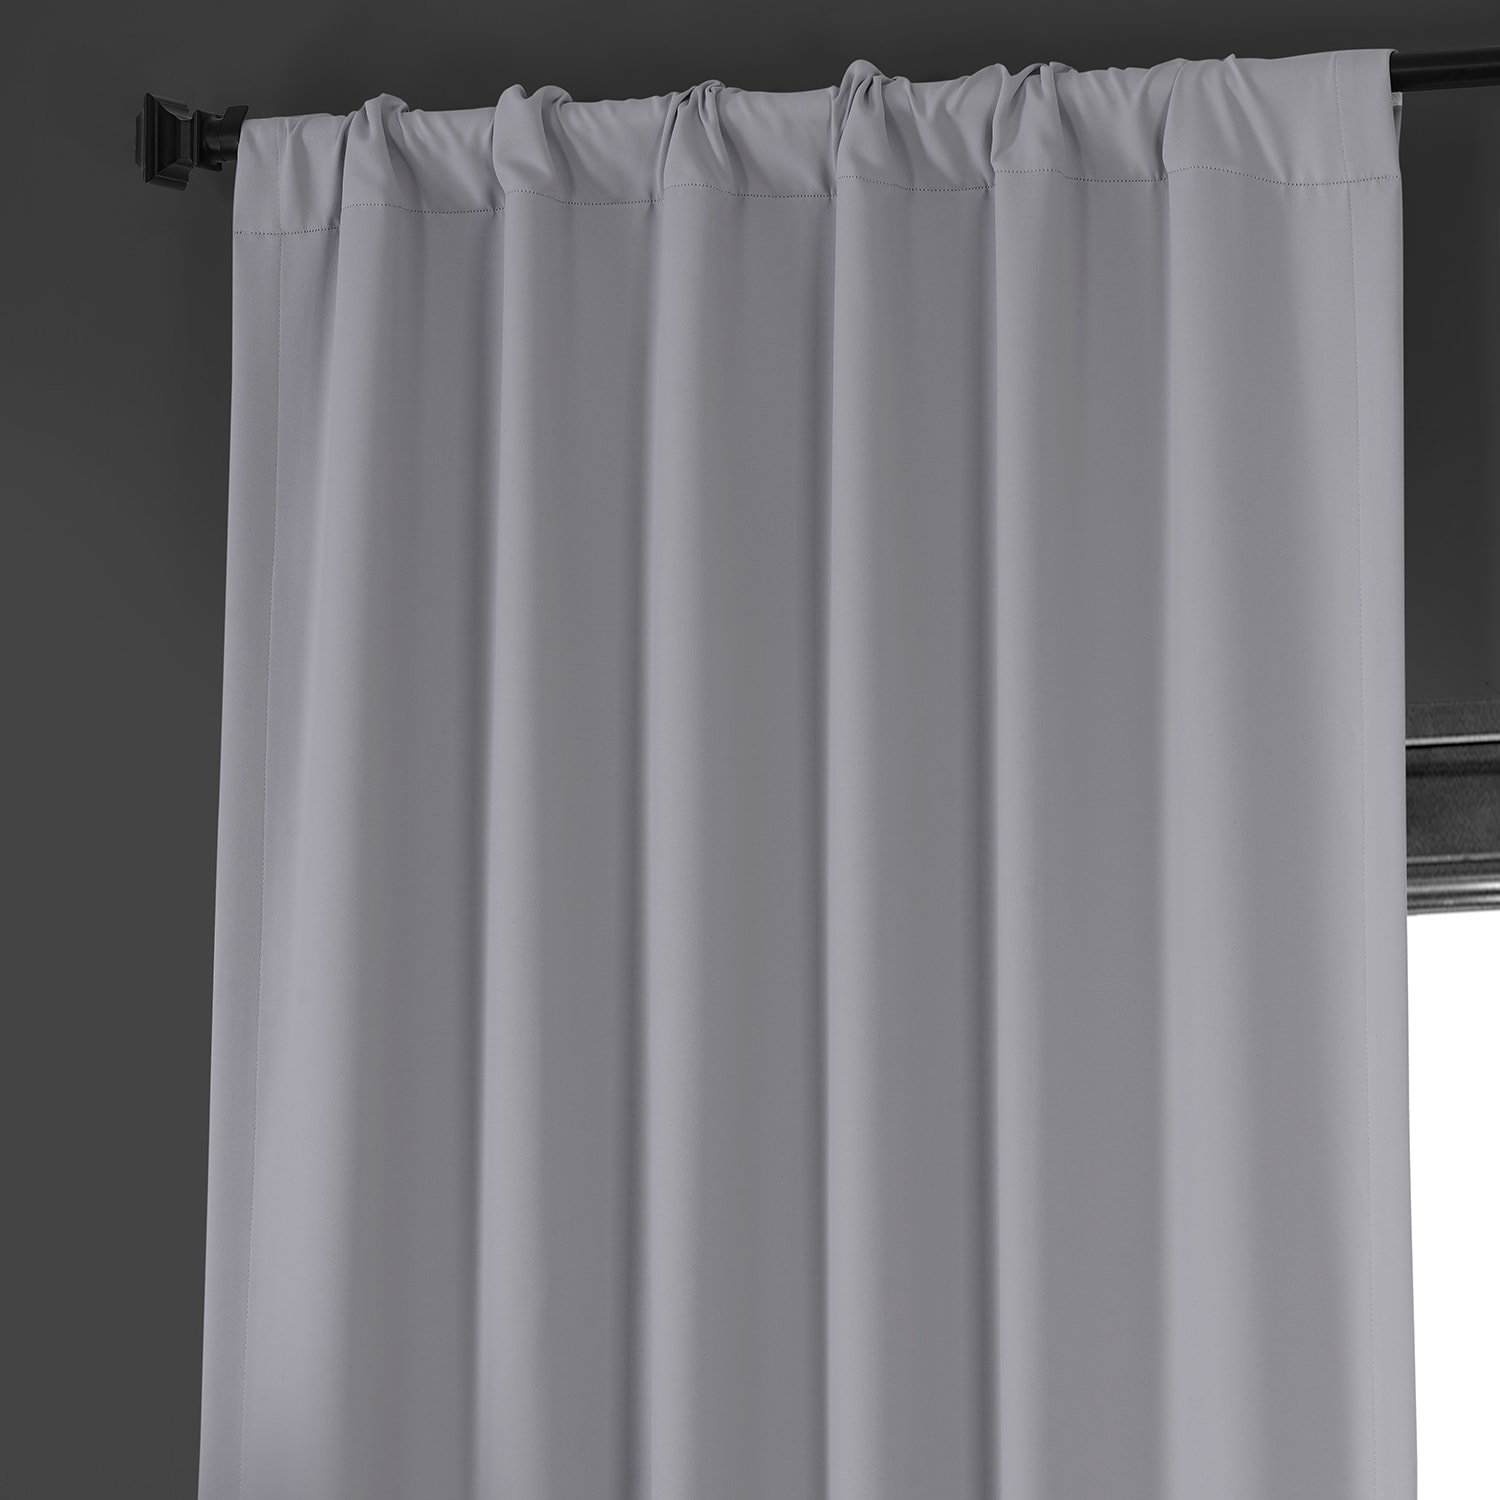 Network Grey Performance Woven Blackout Curtain Pair (2 Panels)